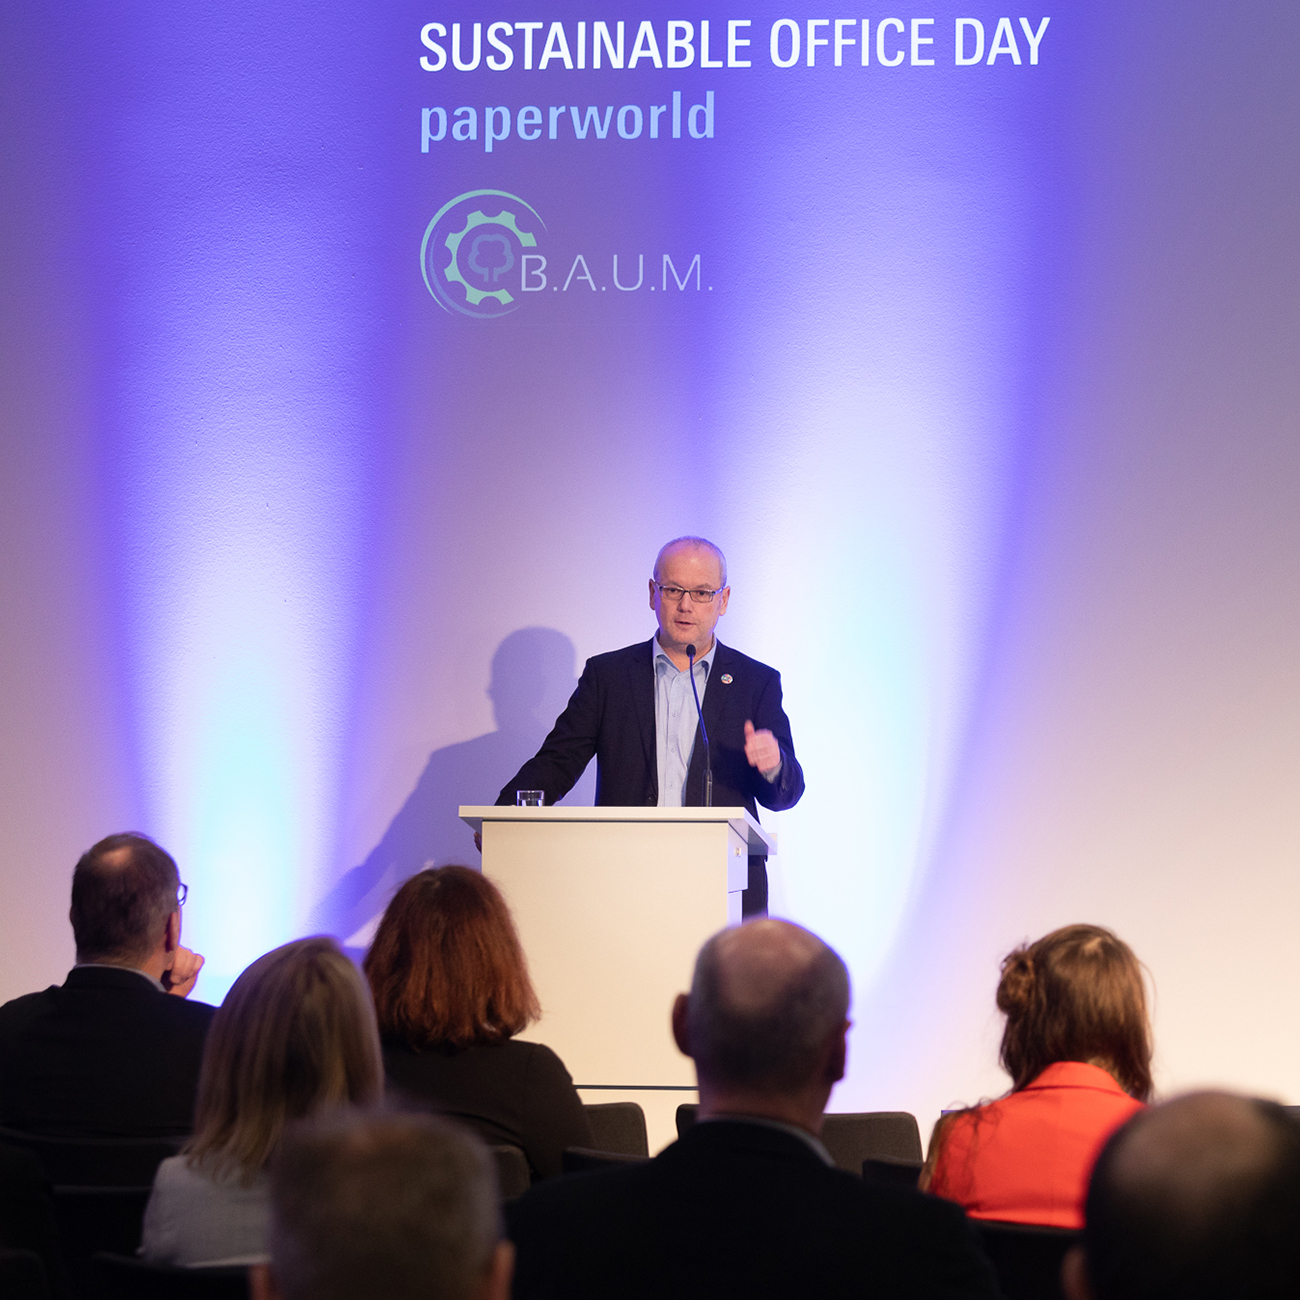 Vortrag auf dem Sustainable Office Day der Paperworld